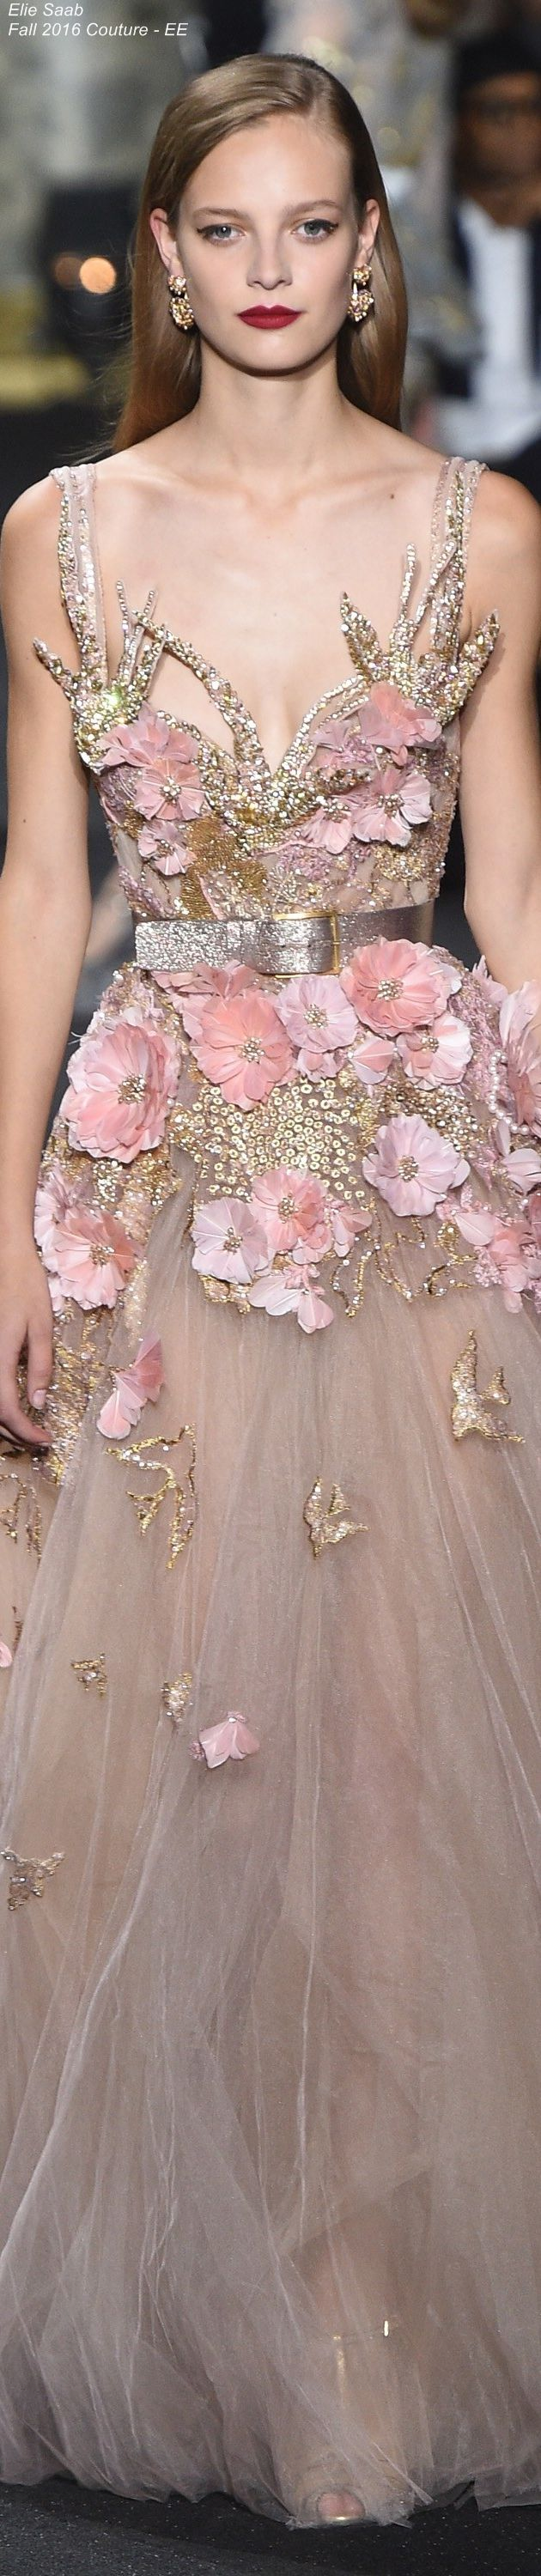 Elie Saab Fall 2016 Couture Love all of the detail on this gown.